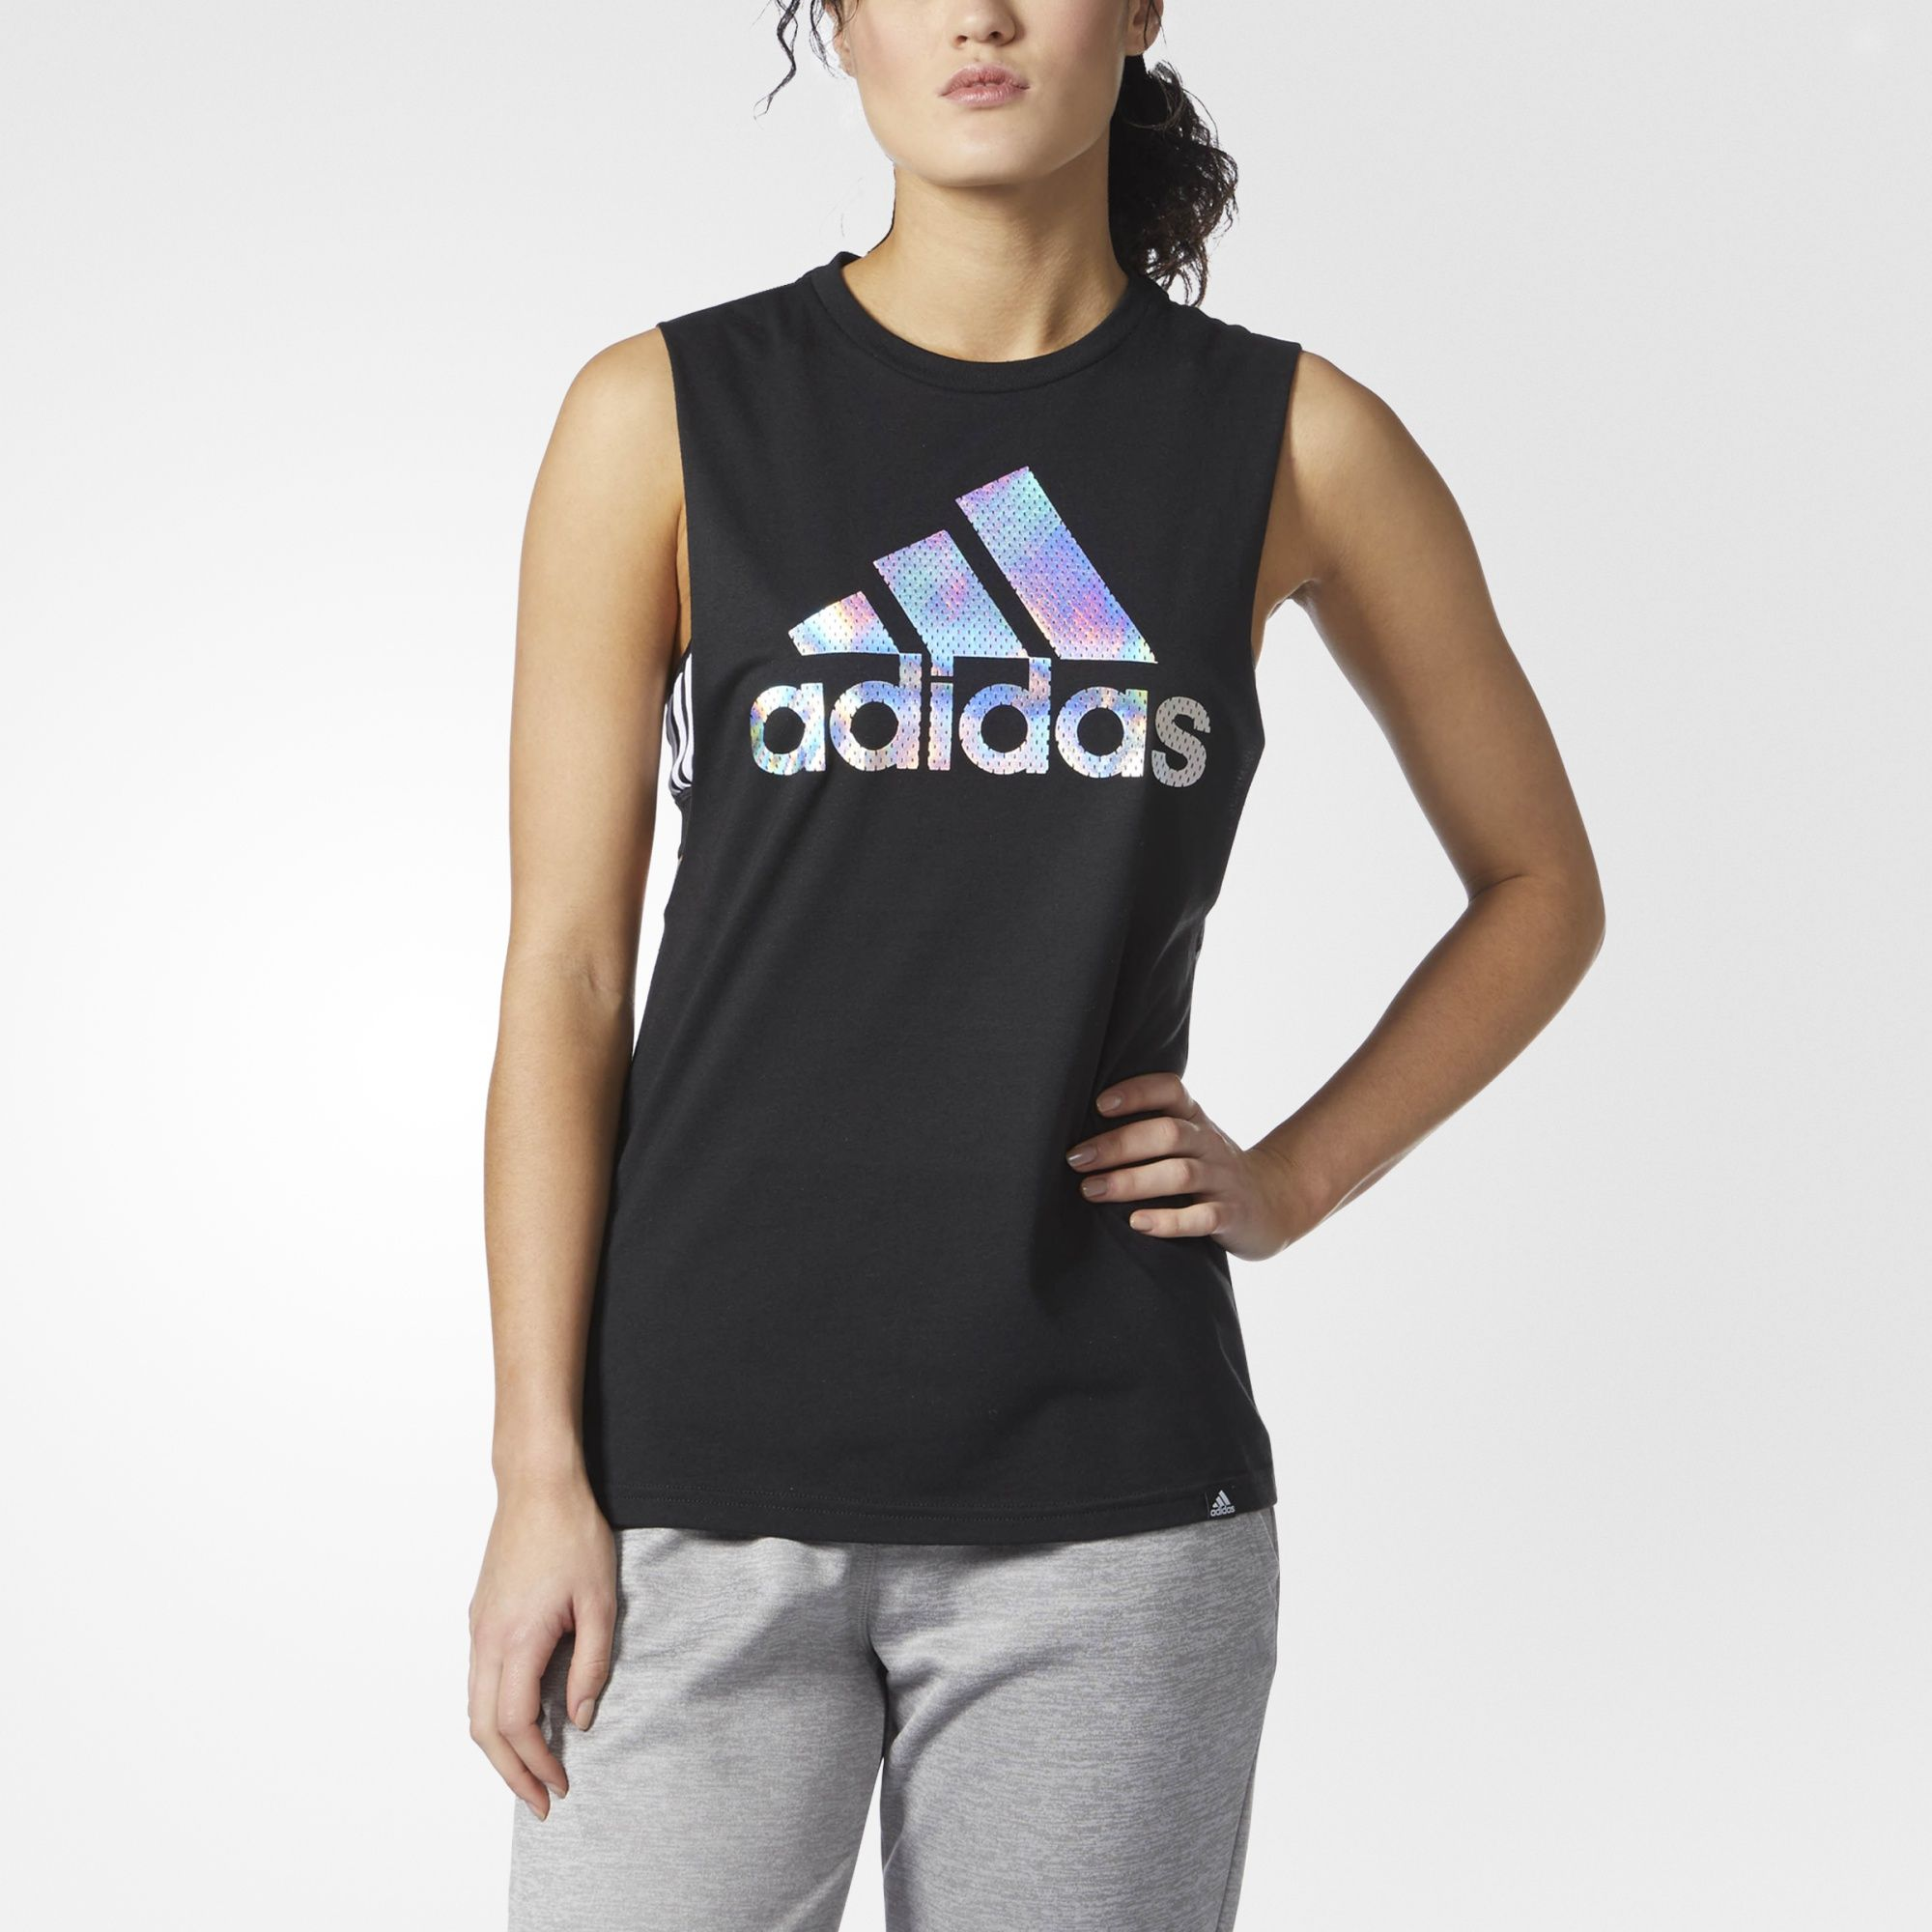 Adidas Women's Must Haves Badge of Sport Tank Top